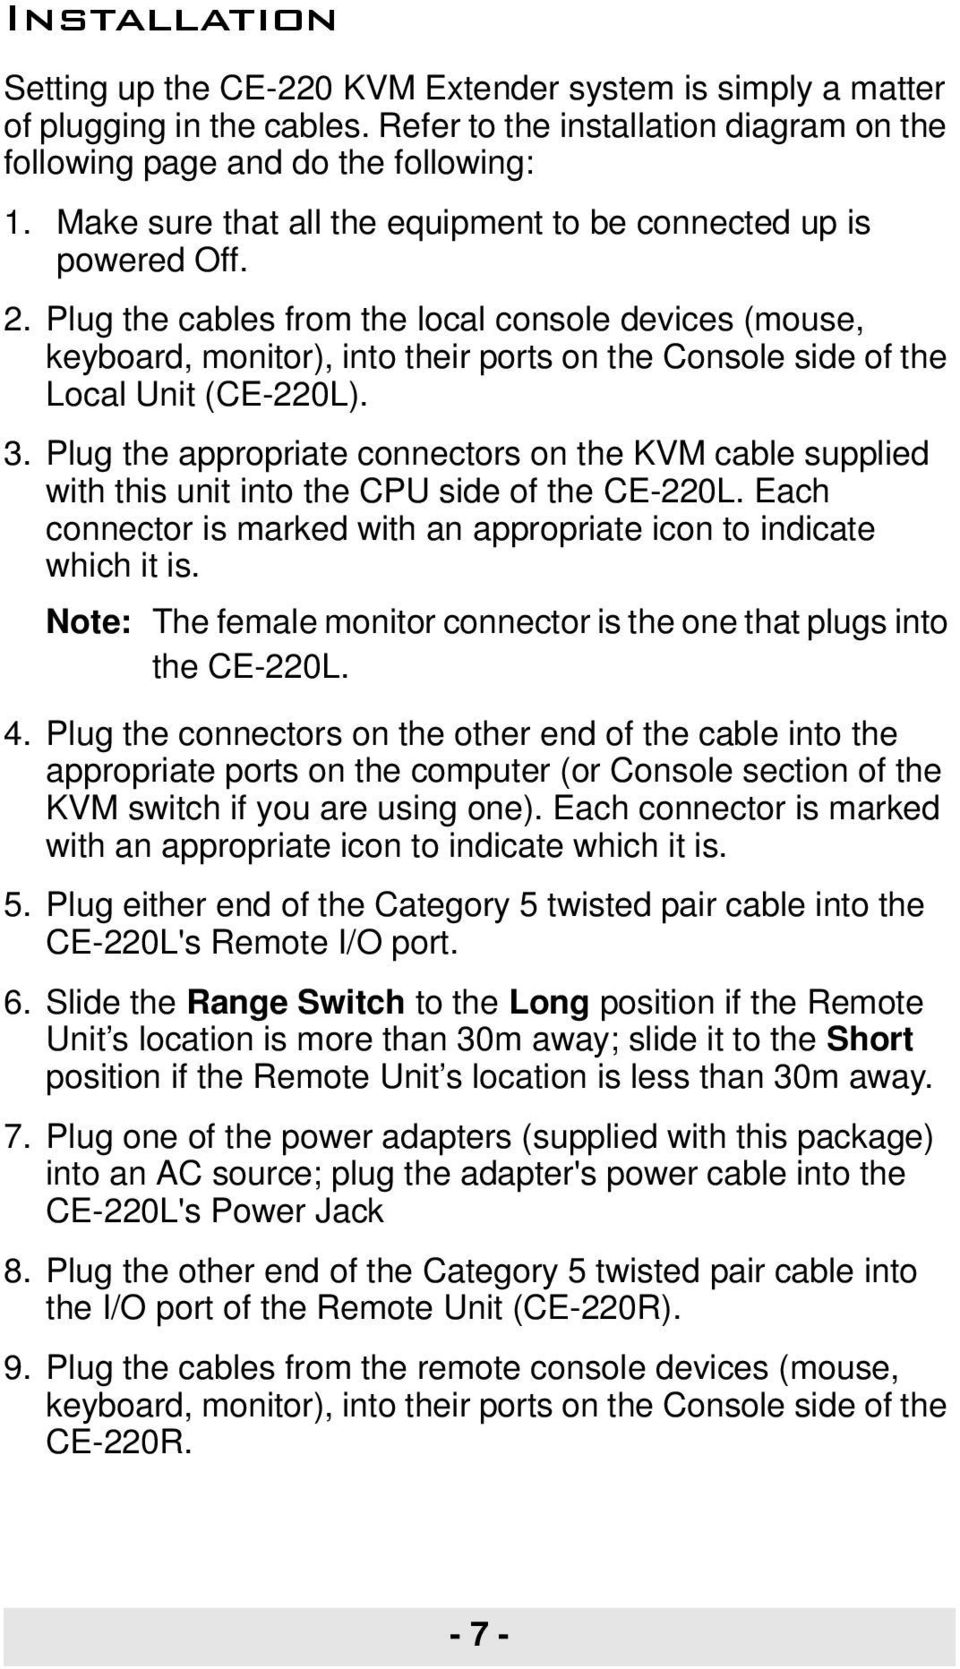 Plug the cables from the local console devices (mouse, keyboard, monitor), into their ports on the Console side of the Local Unit (CE-220L). 3.